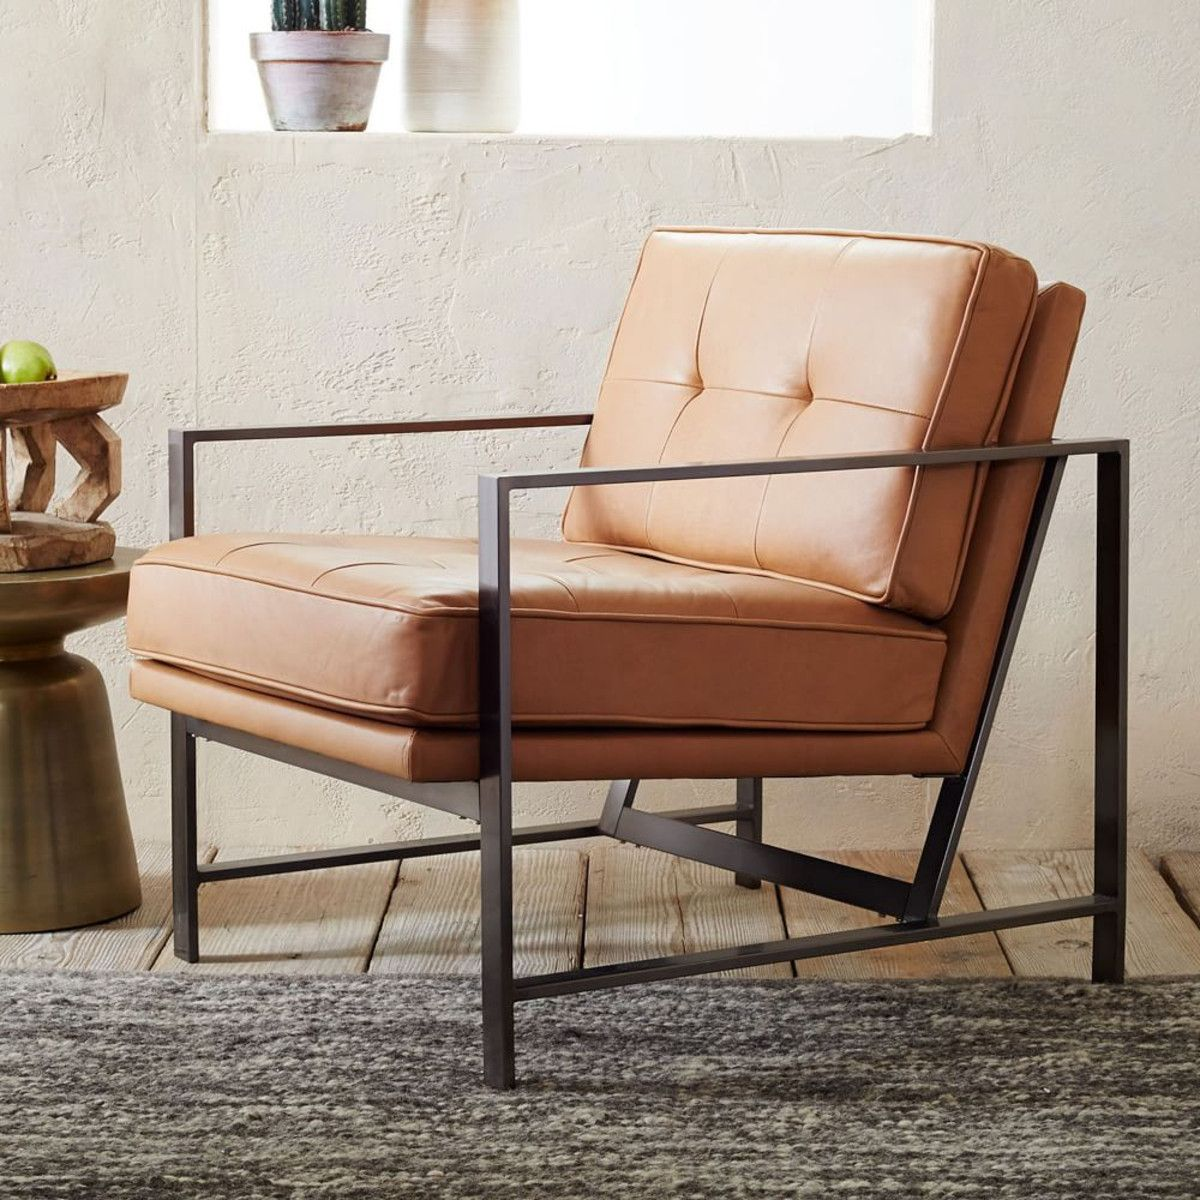 Metal Frame Leather Chair Leather Chair Tufted Leather Chair Upholstered Chairs #west #elm #living #room #chairs